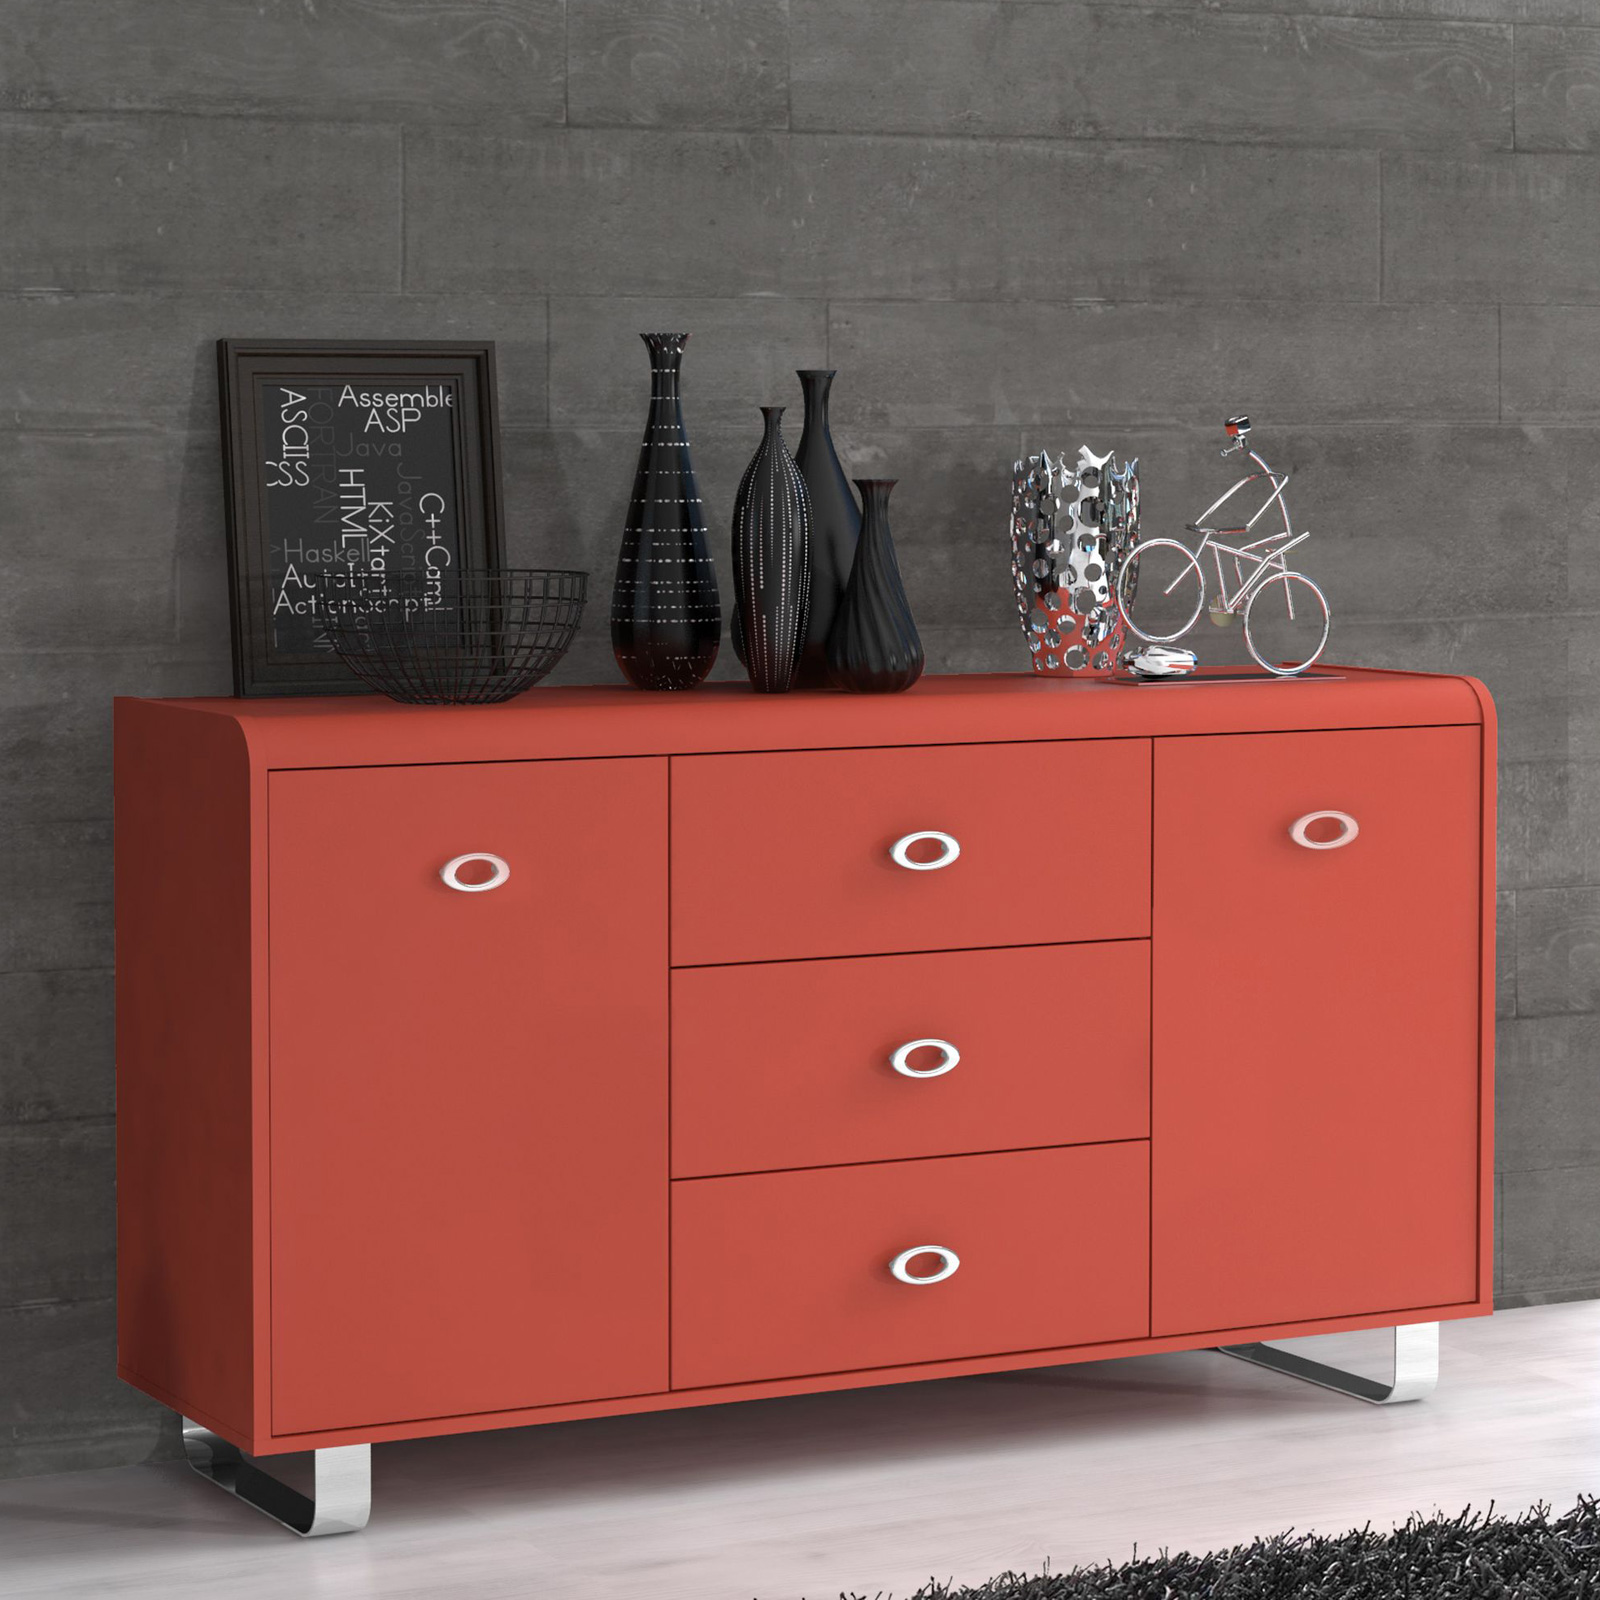 tv unterschrank gipsy kommode sideboard in orange blau rot oder grau auswahl ebay. Black Bedroom Furniture Sets. Home Design Ideas